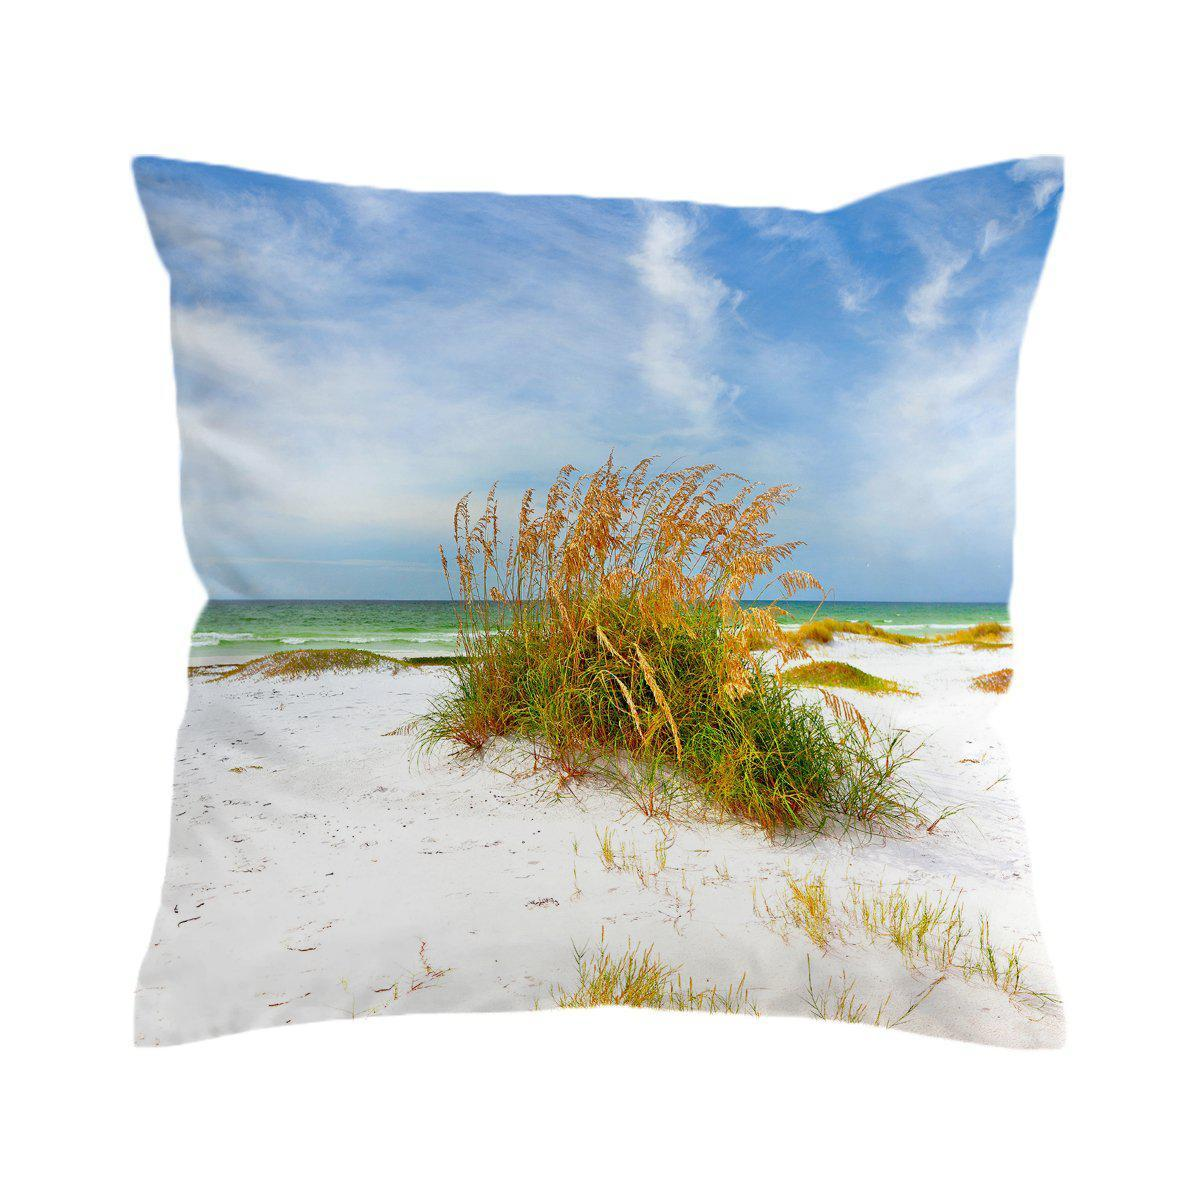 Florida Dreaming Pillow Cover-Coastal Passion